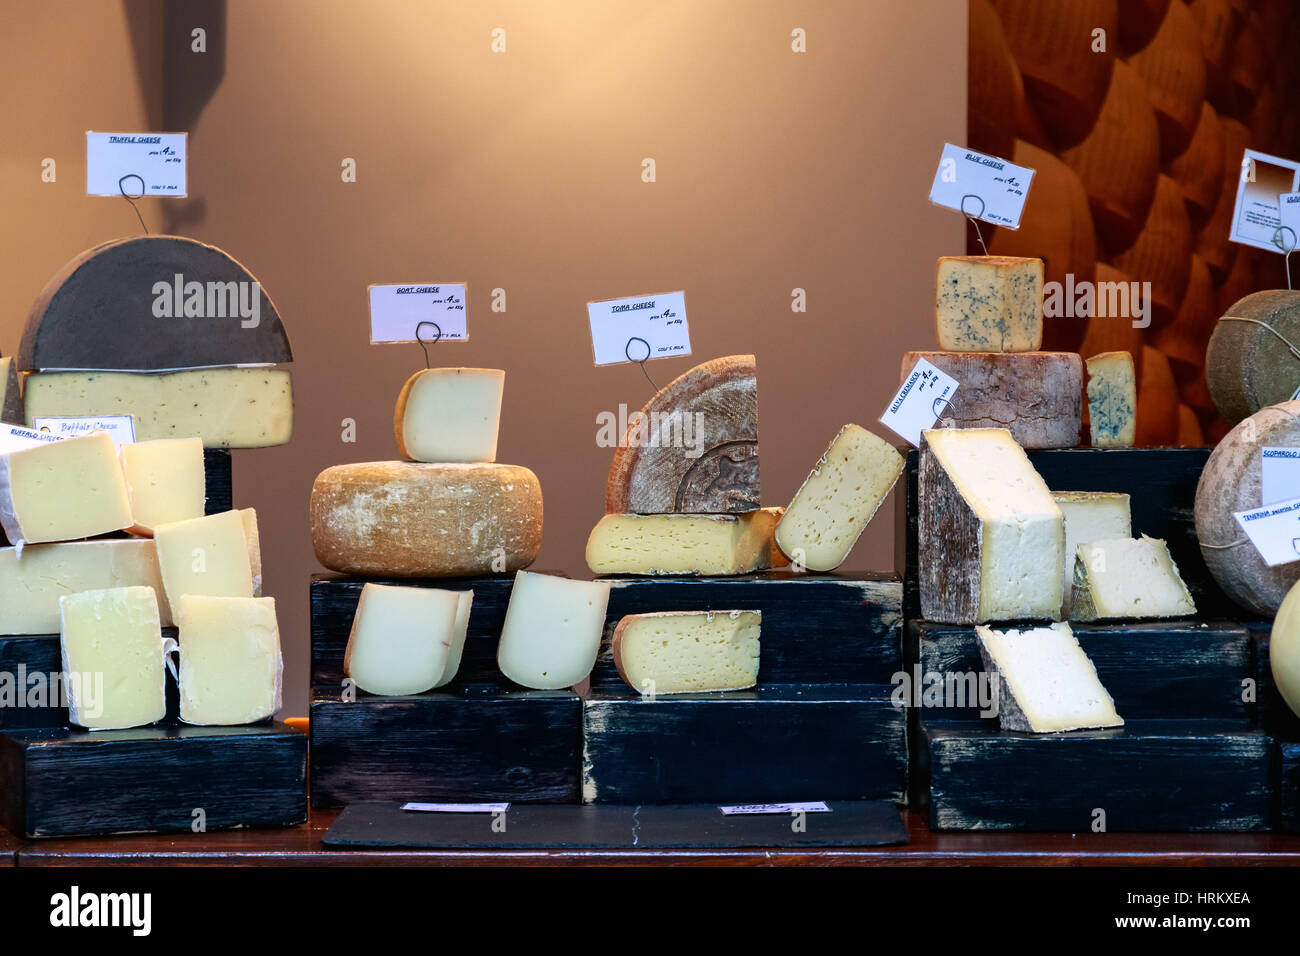 Variety of cheese on display at Borough Market in London - Stock Image